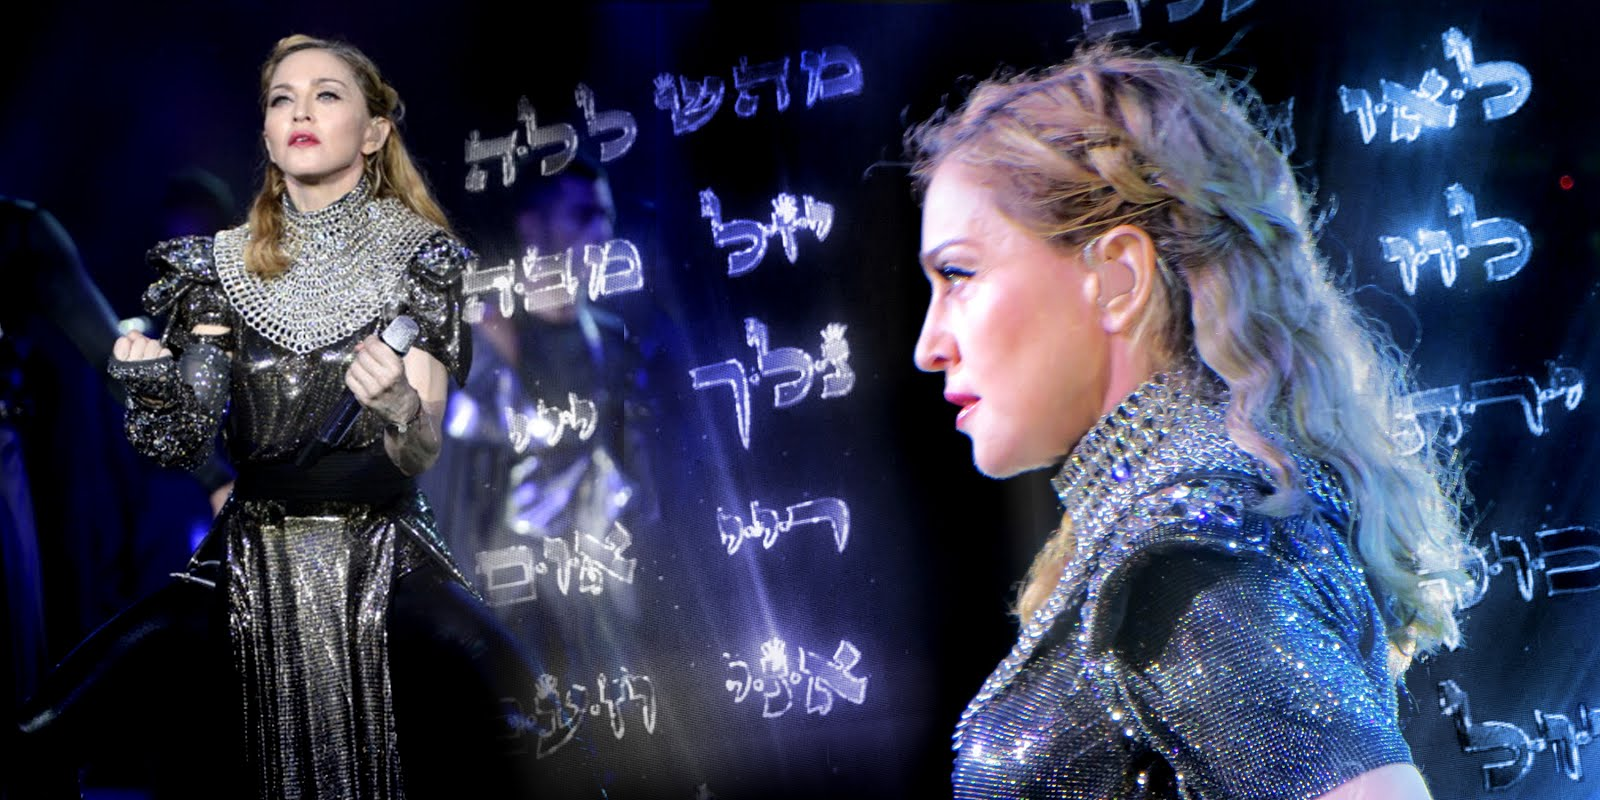 MDNA Tour Digicpack (15)